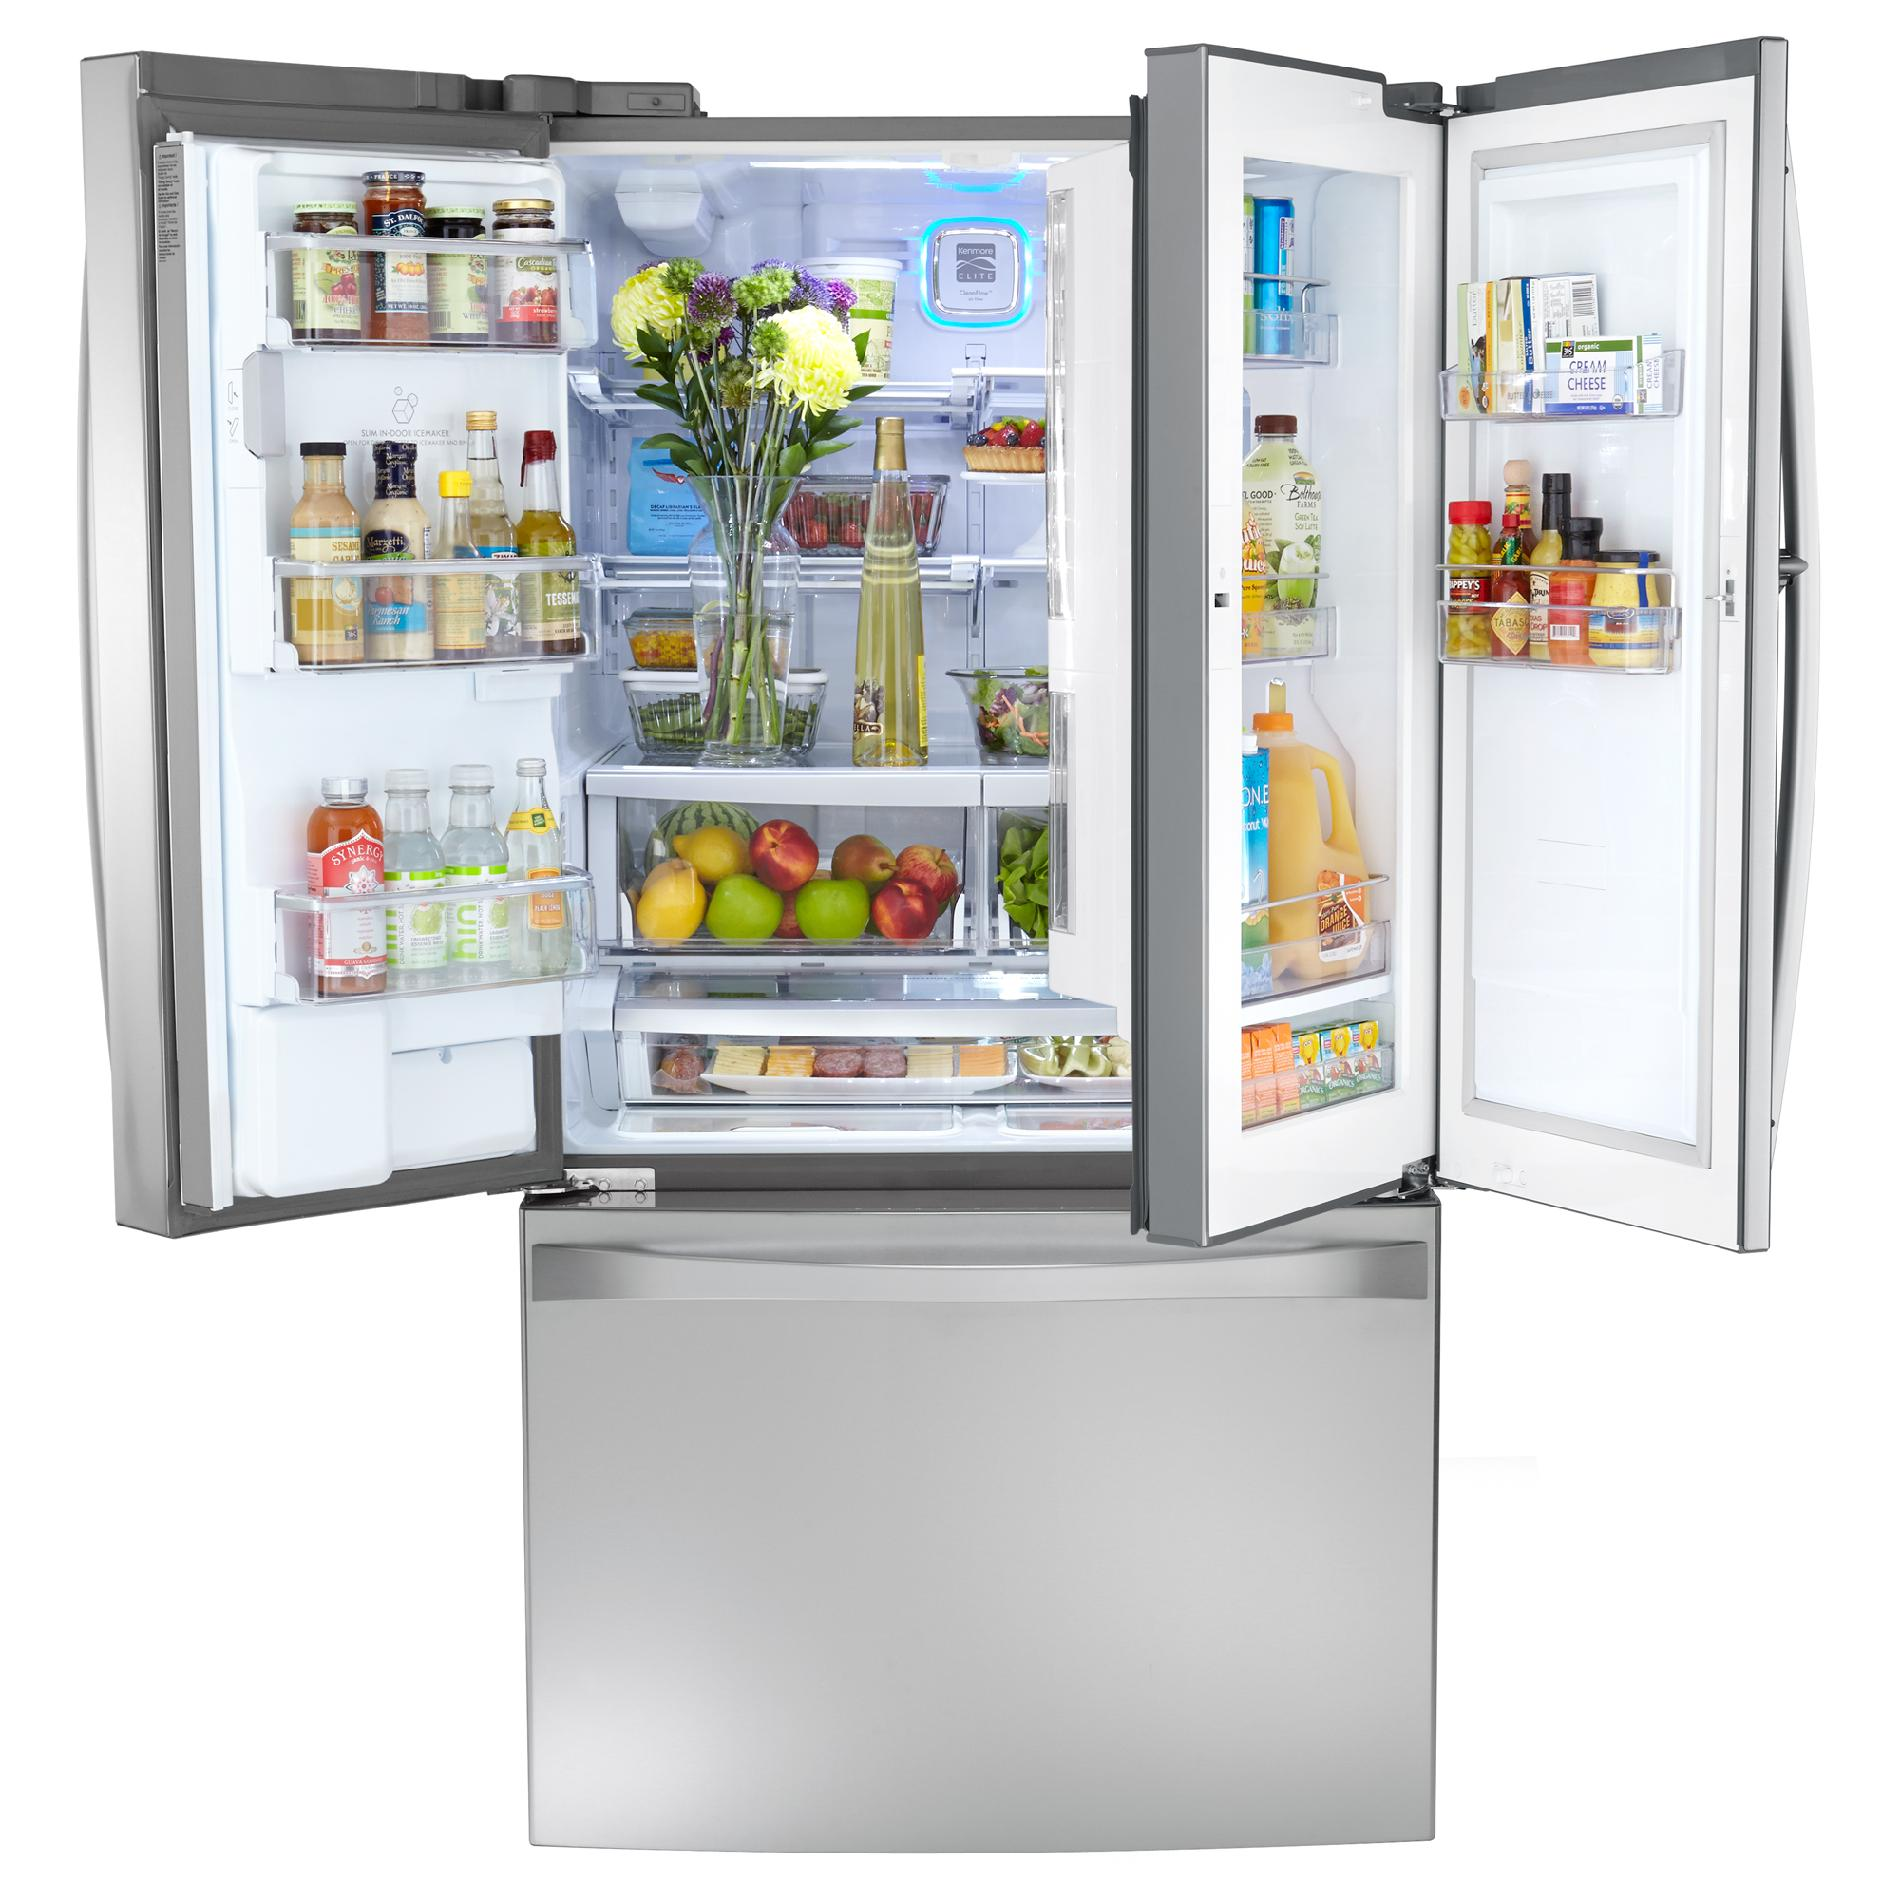 Kenmore Elite 32 cu. ft. Grab-N-Go™ French Door Bottom-Freezer Refrigerator - Stainless Steel